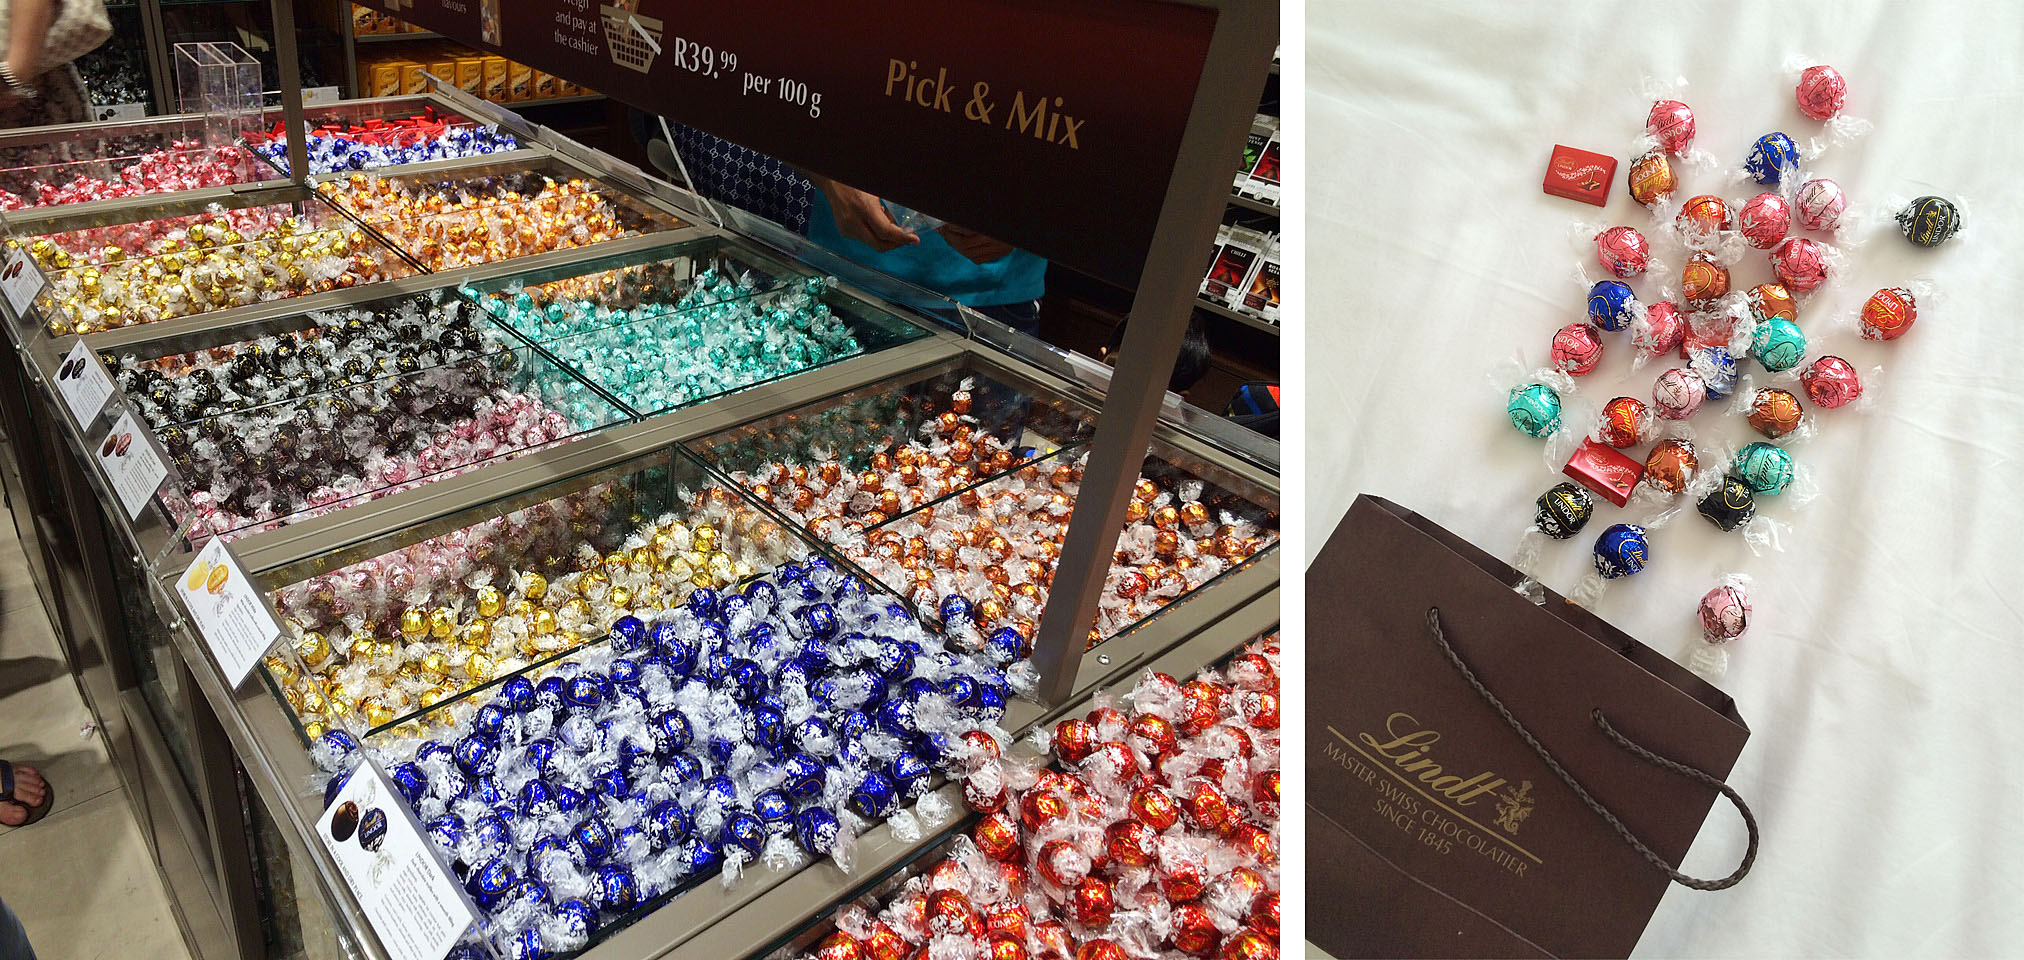 LINDT LINDOR Pick n Mix (images taken in my iPhone)